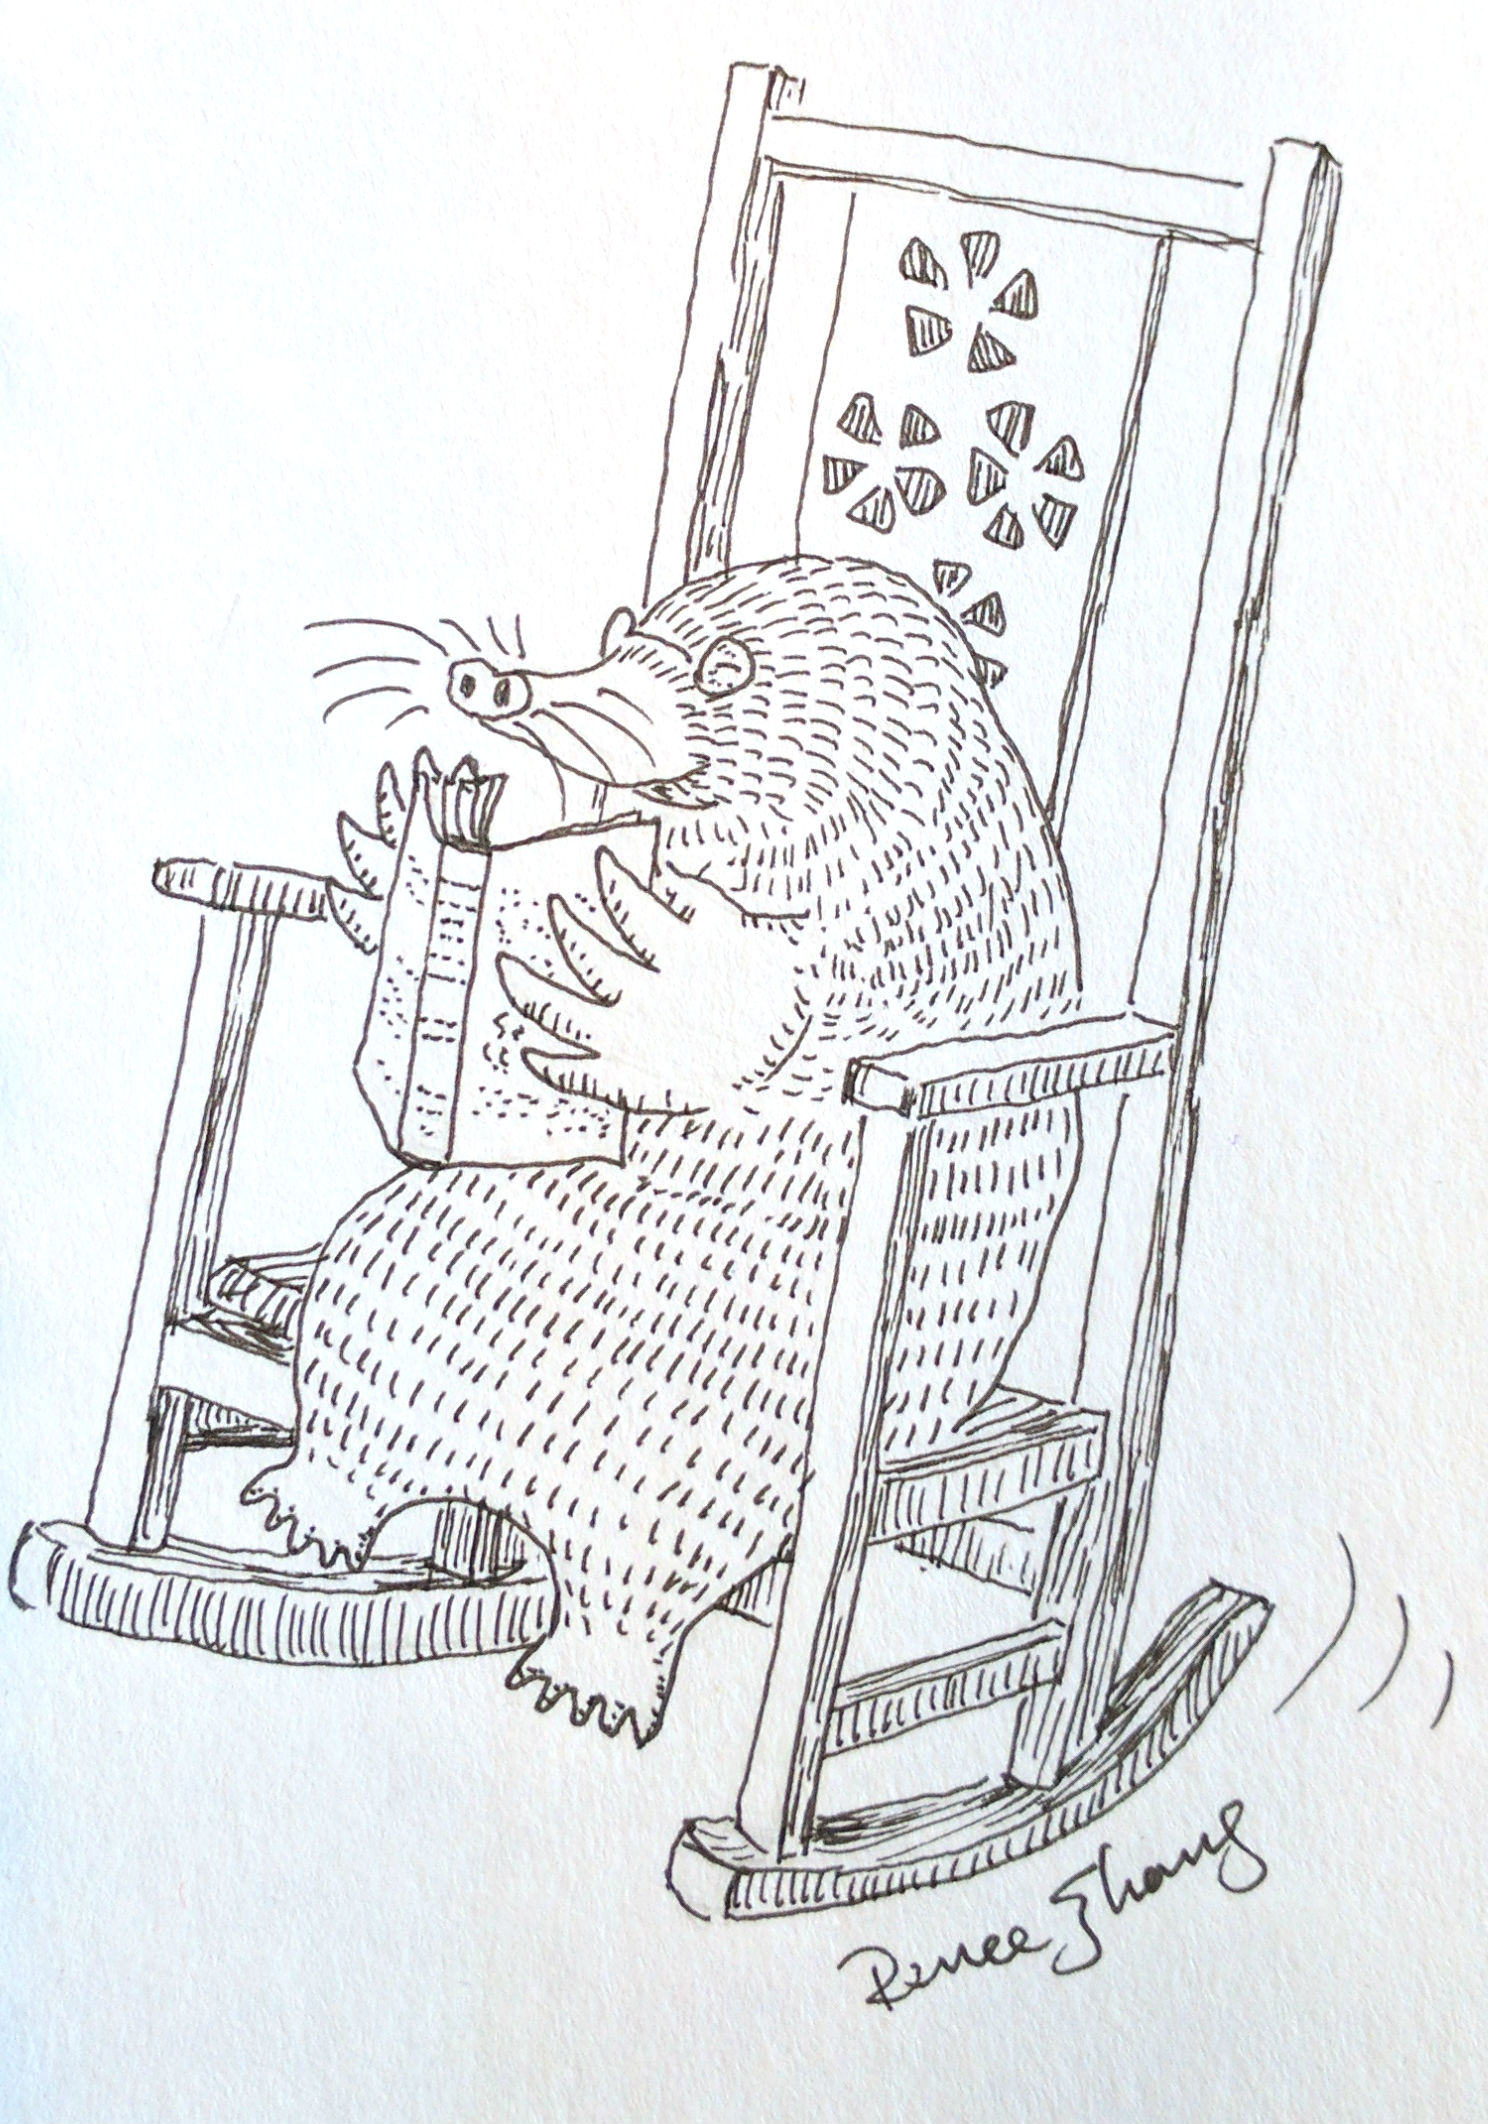 Mole in Rocking Chair (2017)